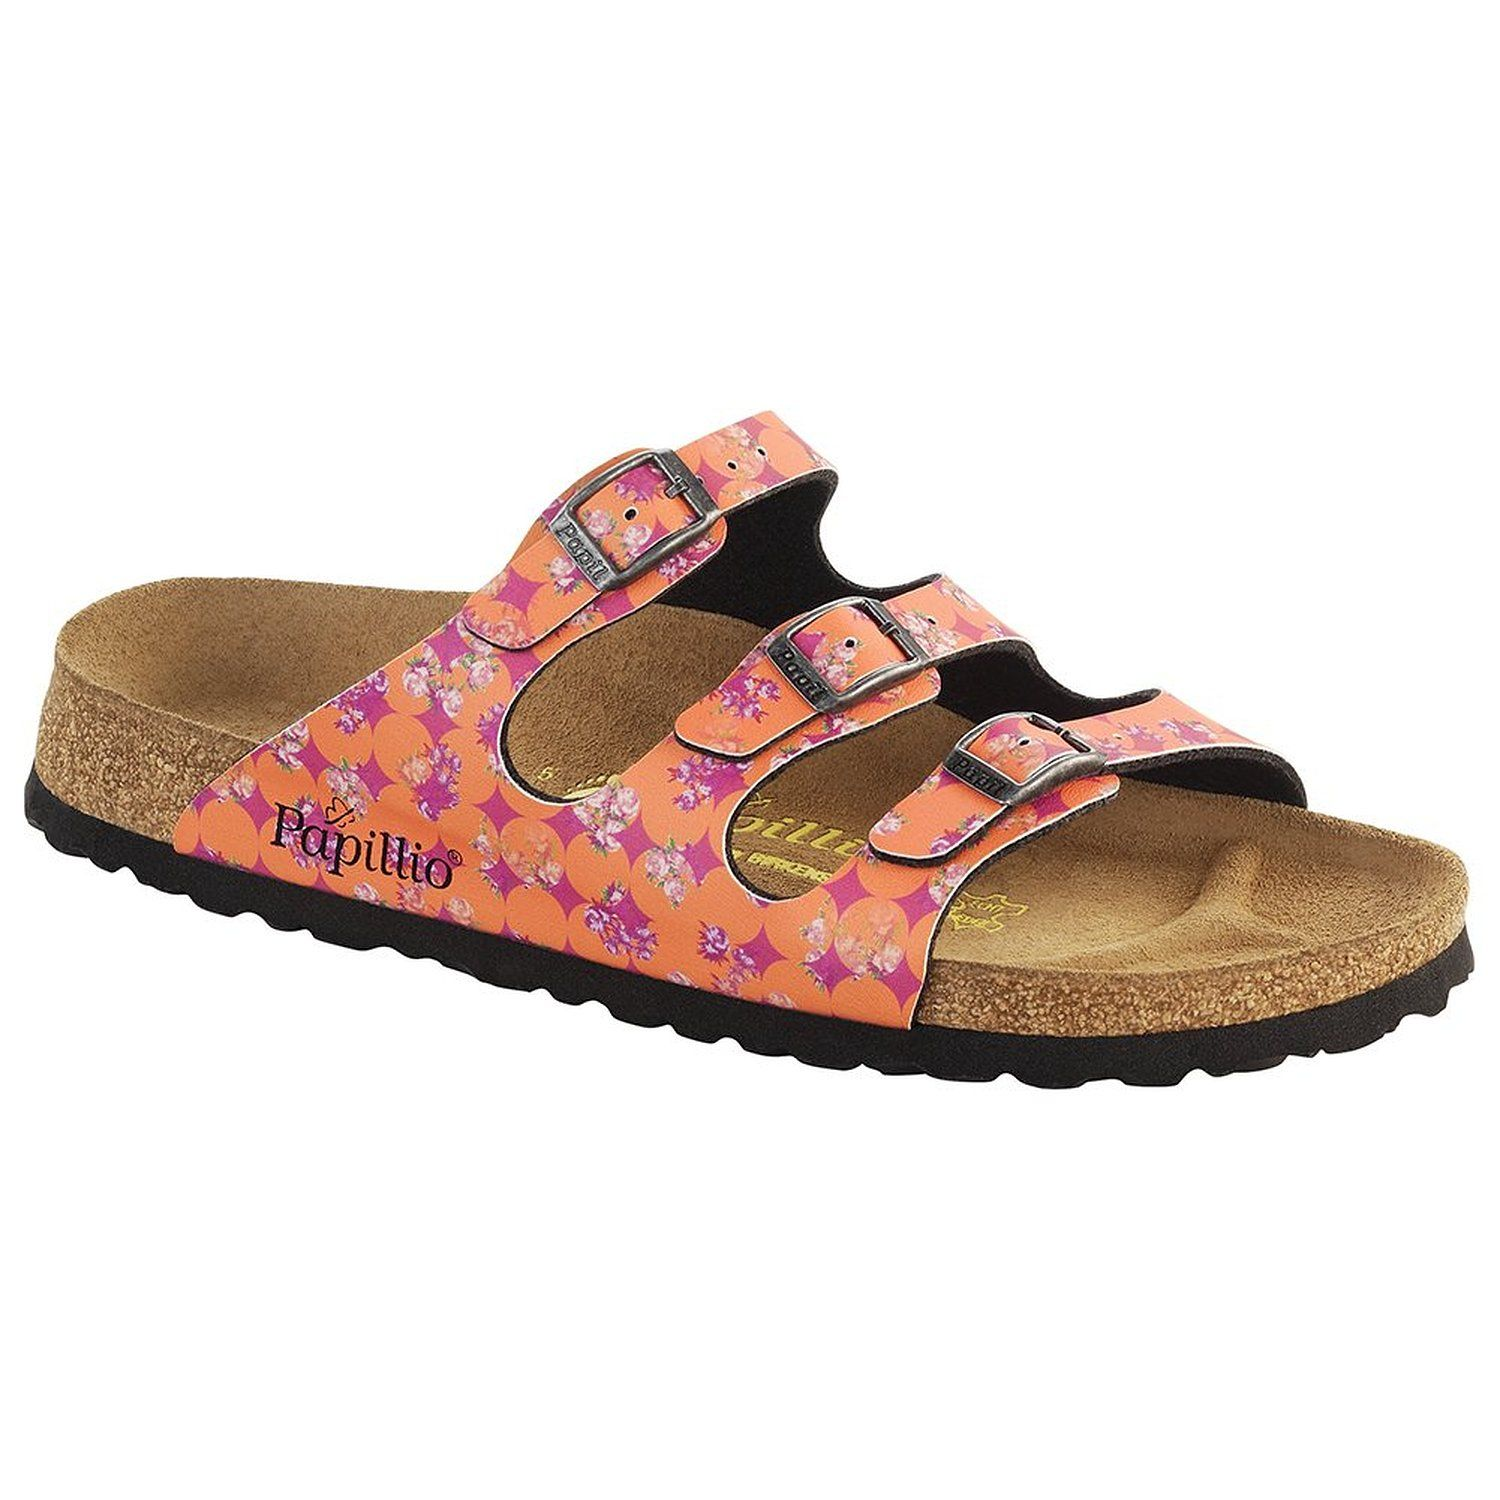 a8d2e0ed5031 Papillio Women s Florida Birko-Flor Sandal    See this awesome image   Birkenstock  sandals